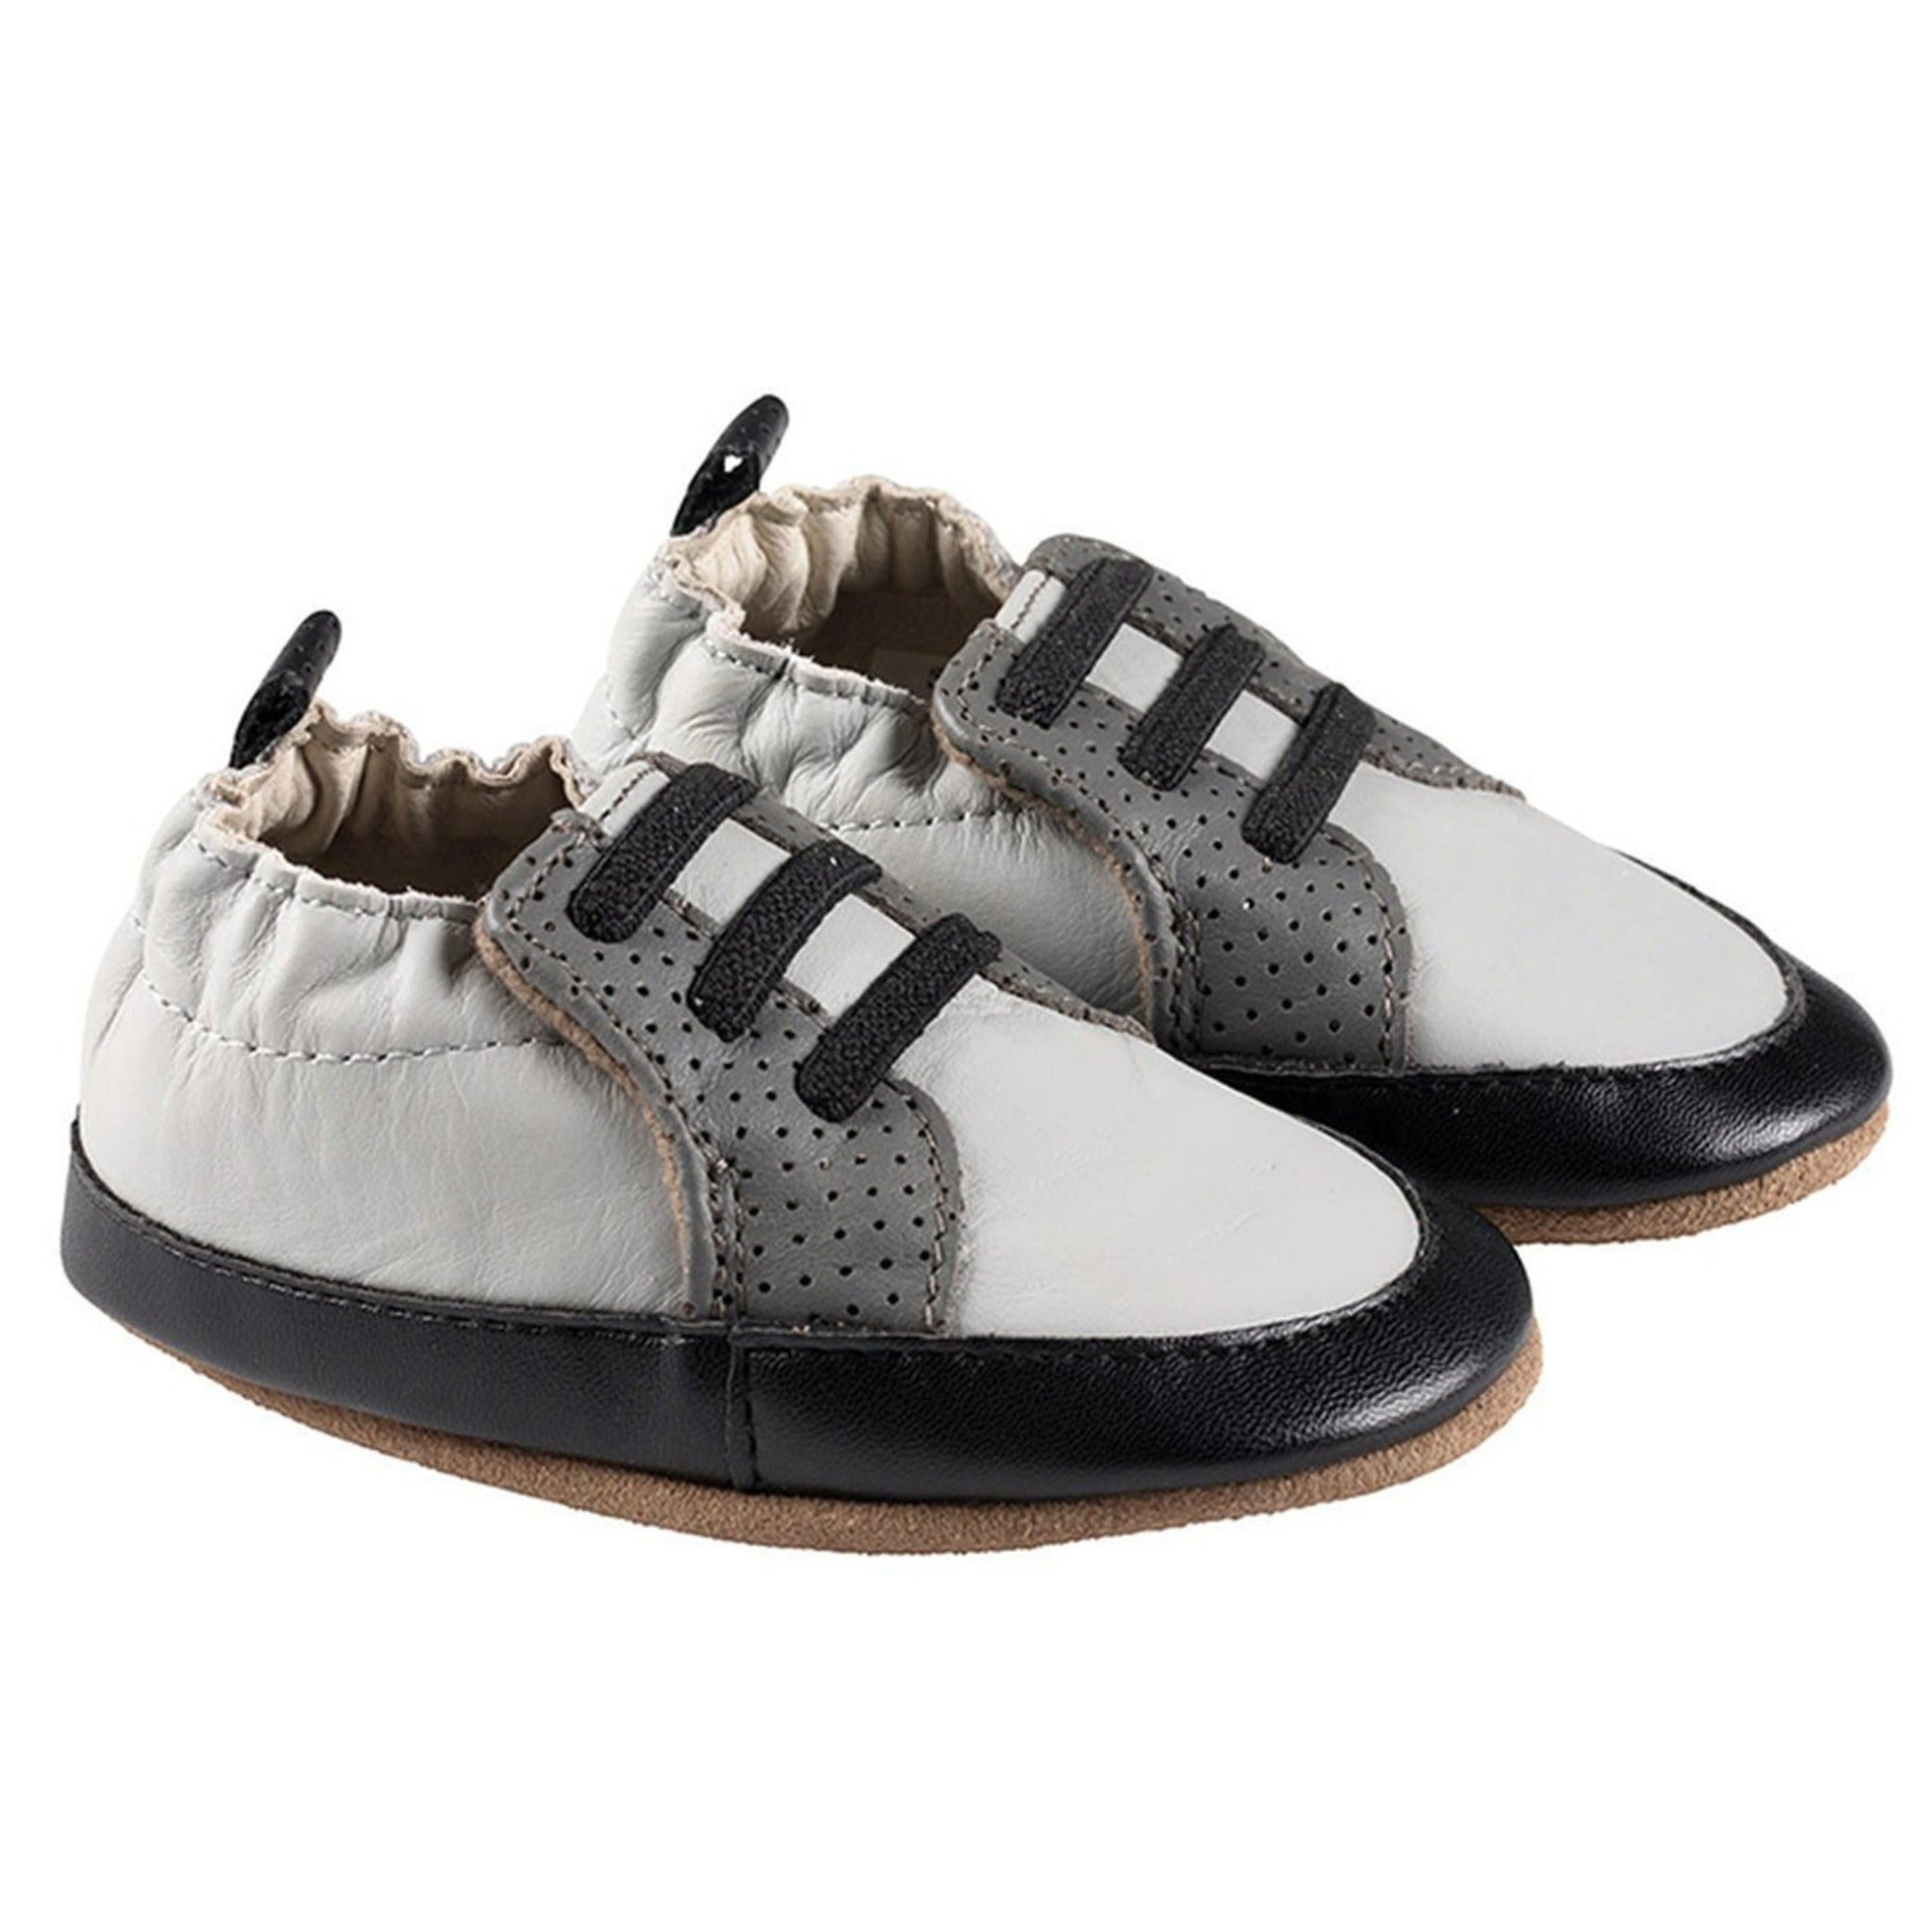 Robeez gray & white boys trainer shoes